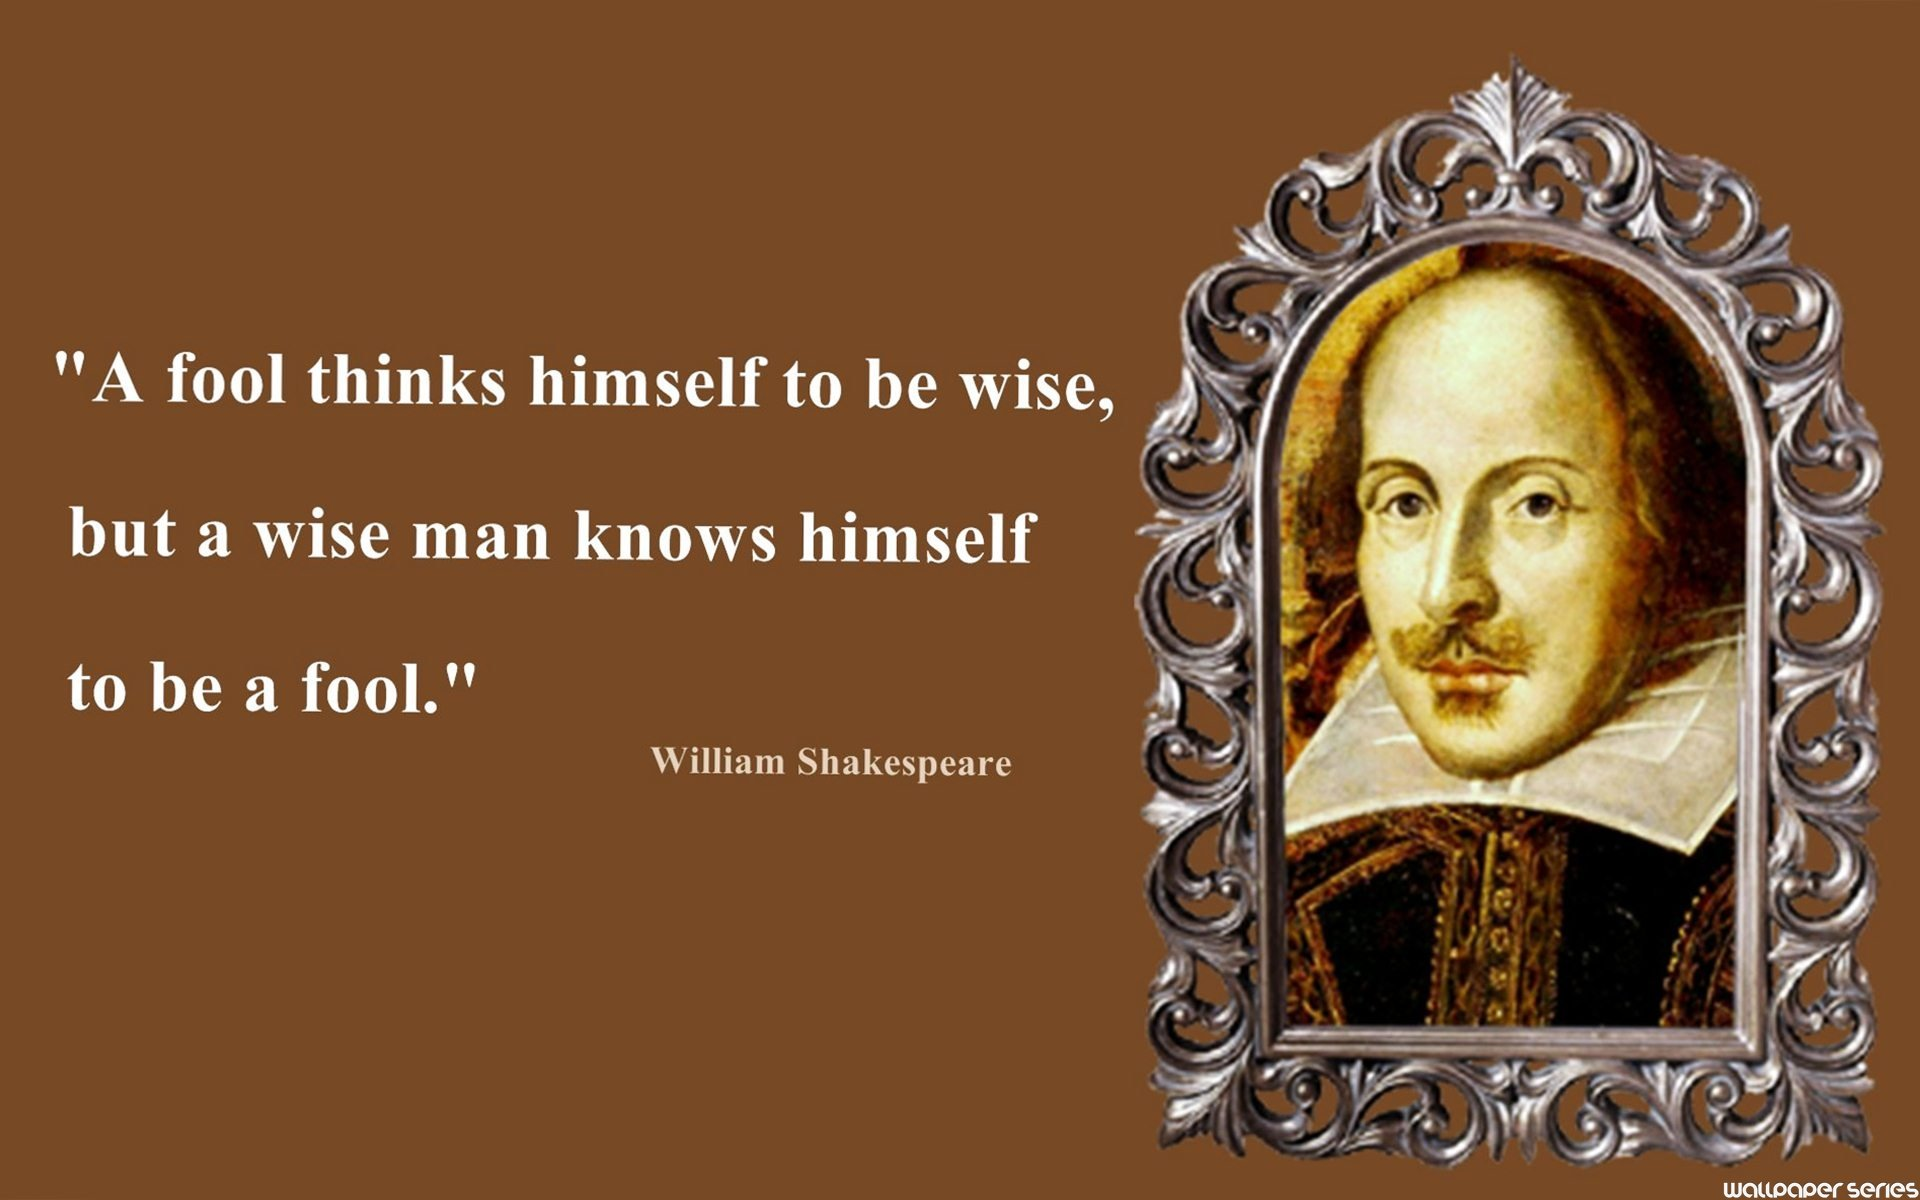 William Shakespeare Fool Thinks Quotes Wallpaper Shakespeare Wallpaper Hd 2022135 Hd Wallpaper Backgrounds Download